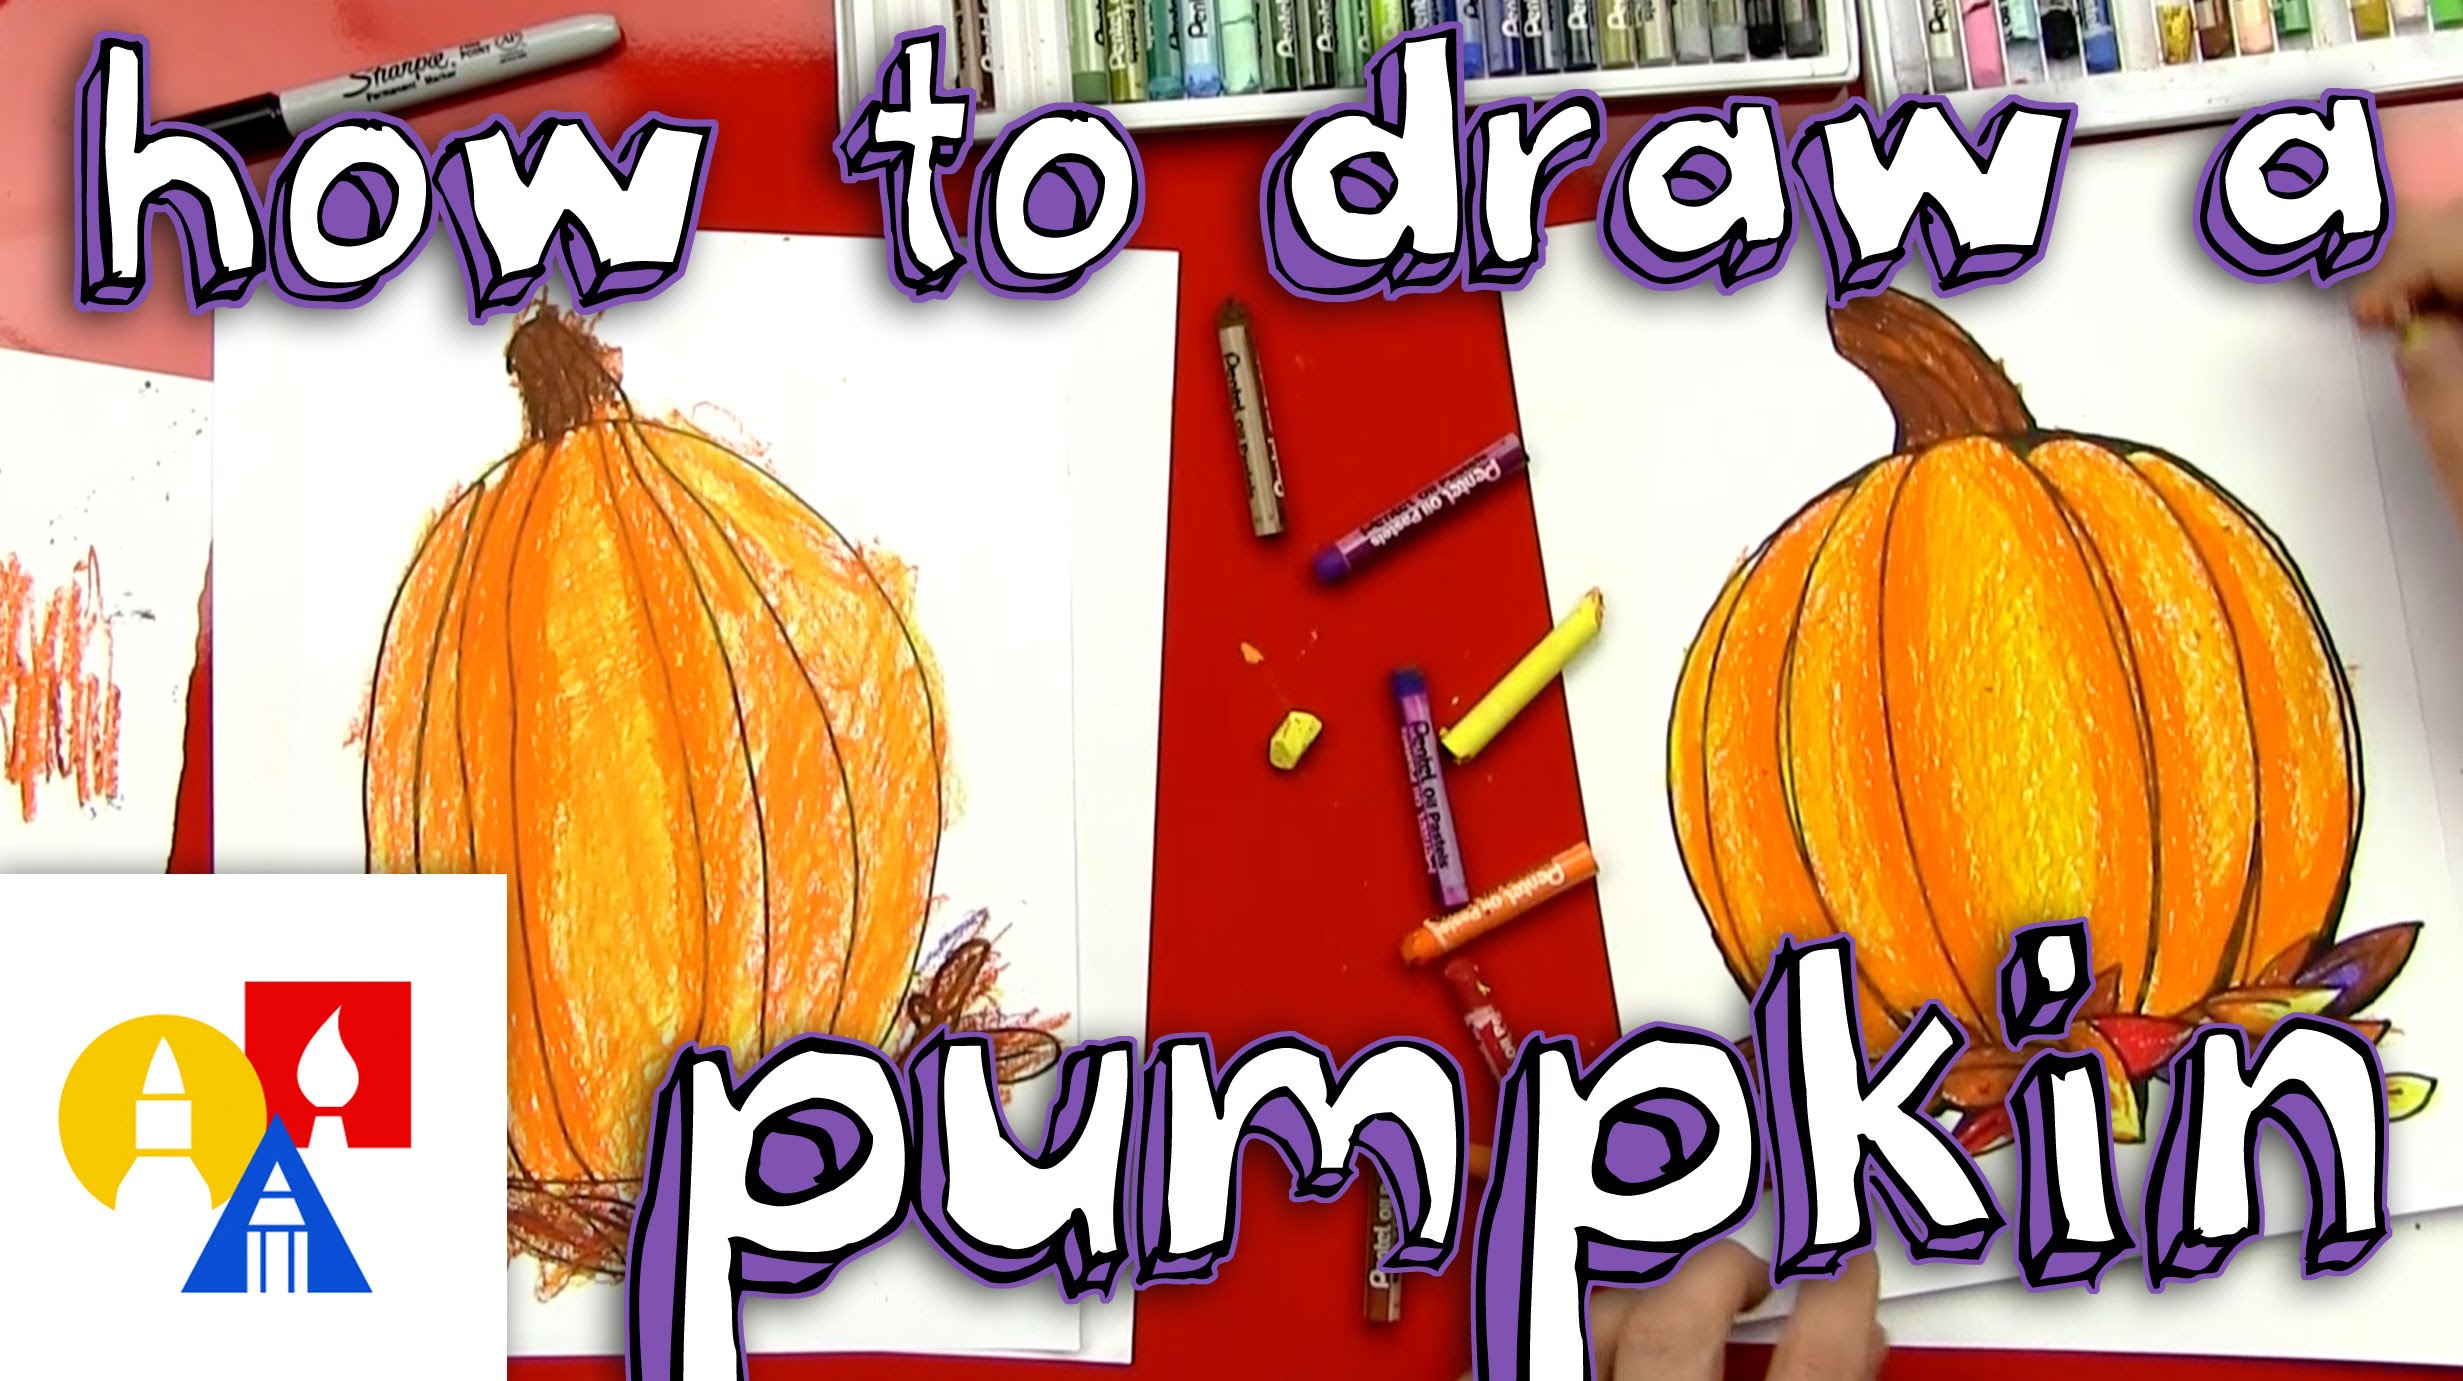 Drawn pumpkin color Draw To And YouTube How